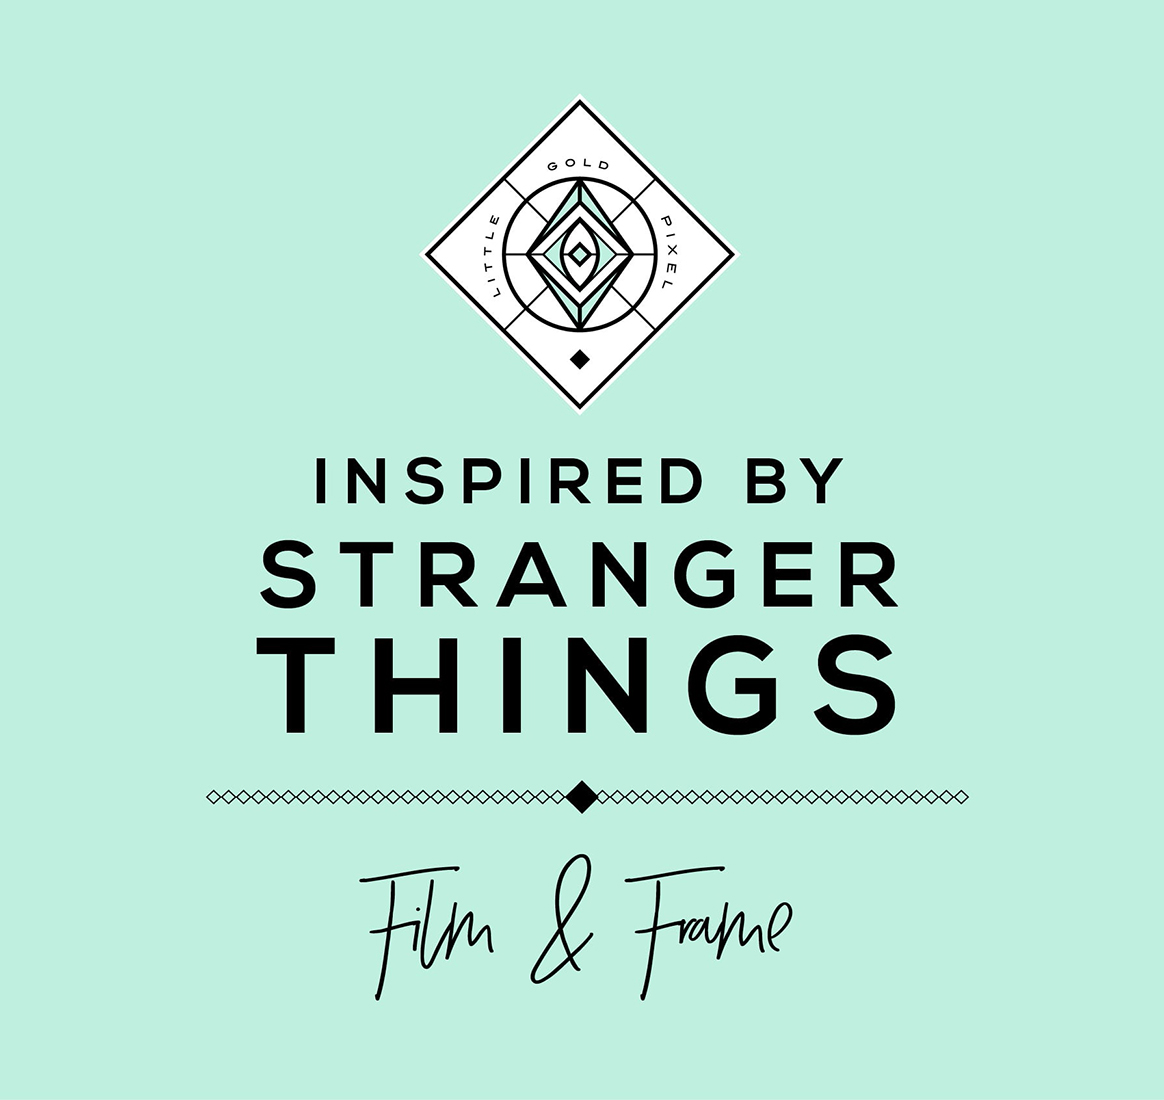 Stranger Things Free Art Printable Mornings Are for Coffee and Contemplation • Little Gold Pixel